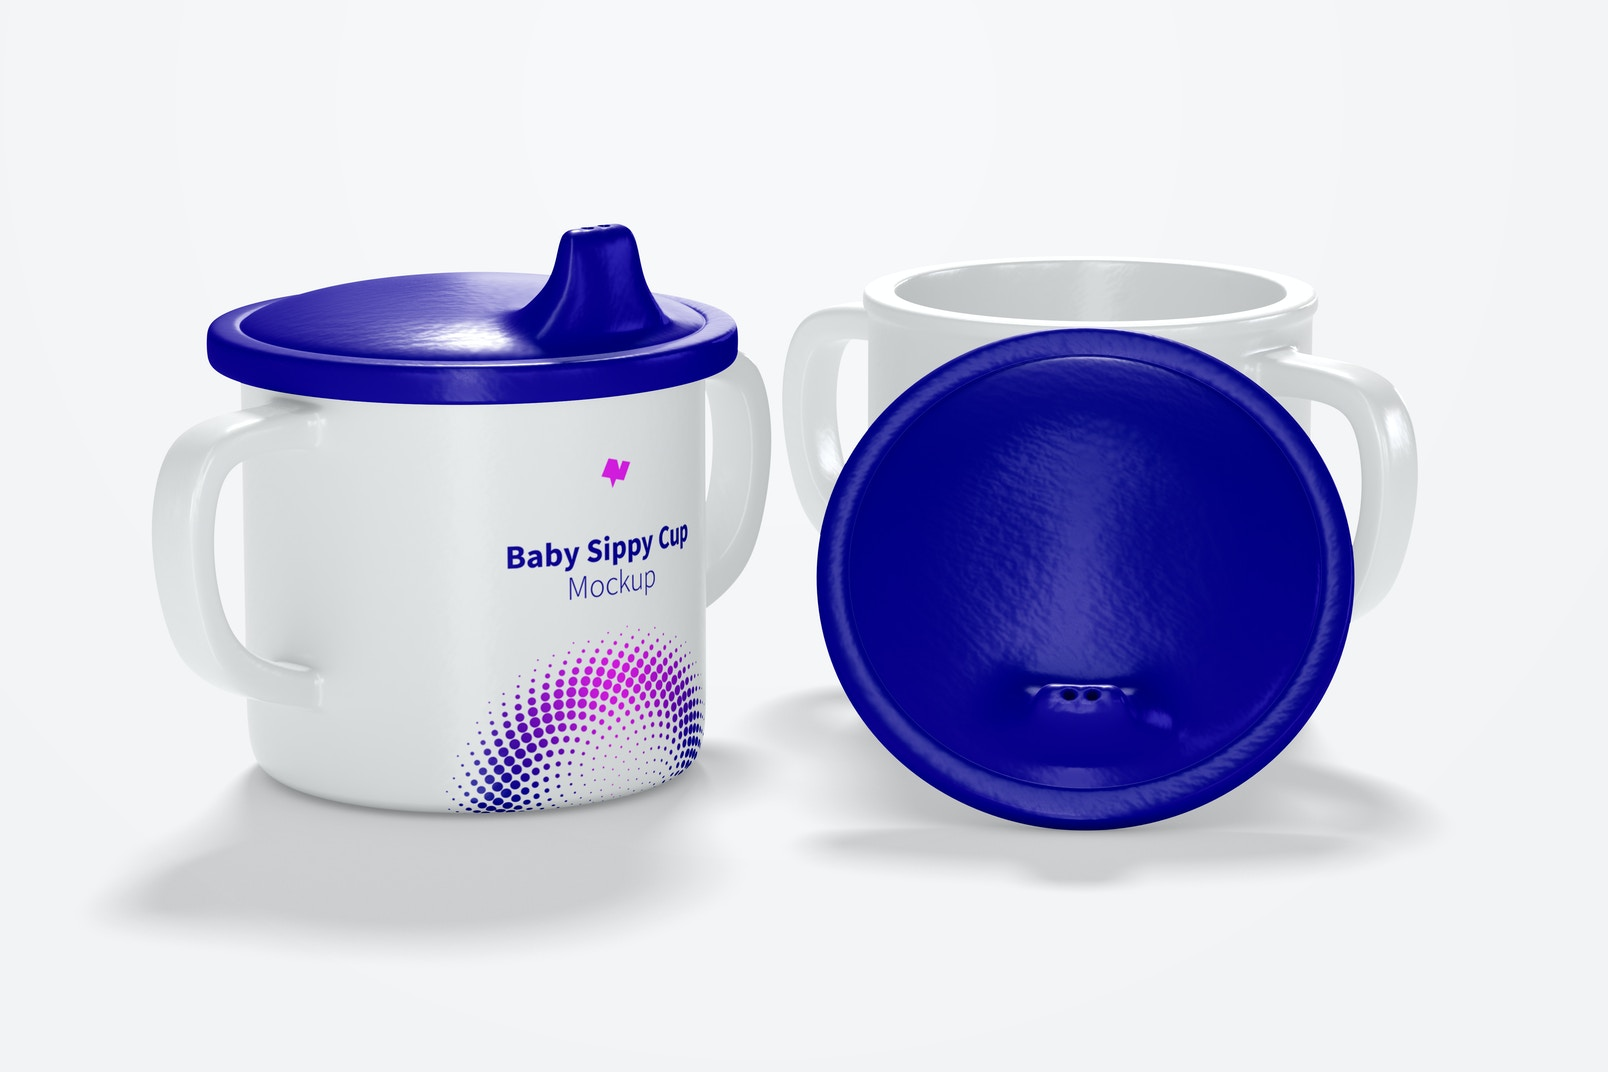 Baby Sippy Cup Mockup, Opened and Closed